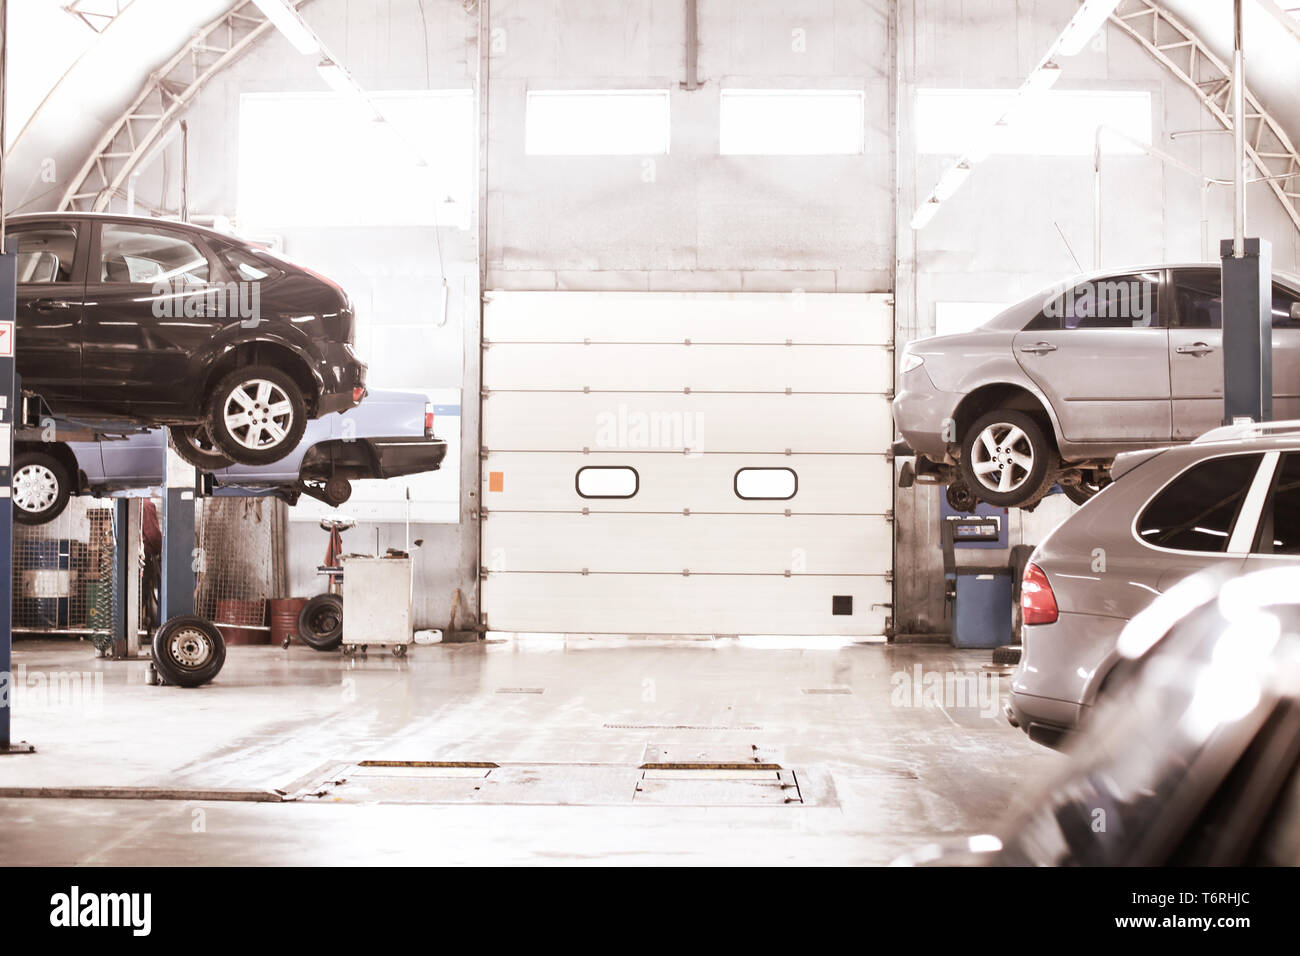 Interior Of Car Service Center With Automobiles Stock Photo Alamy